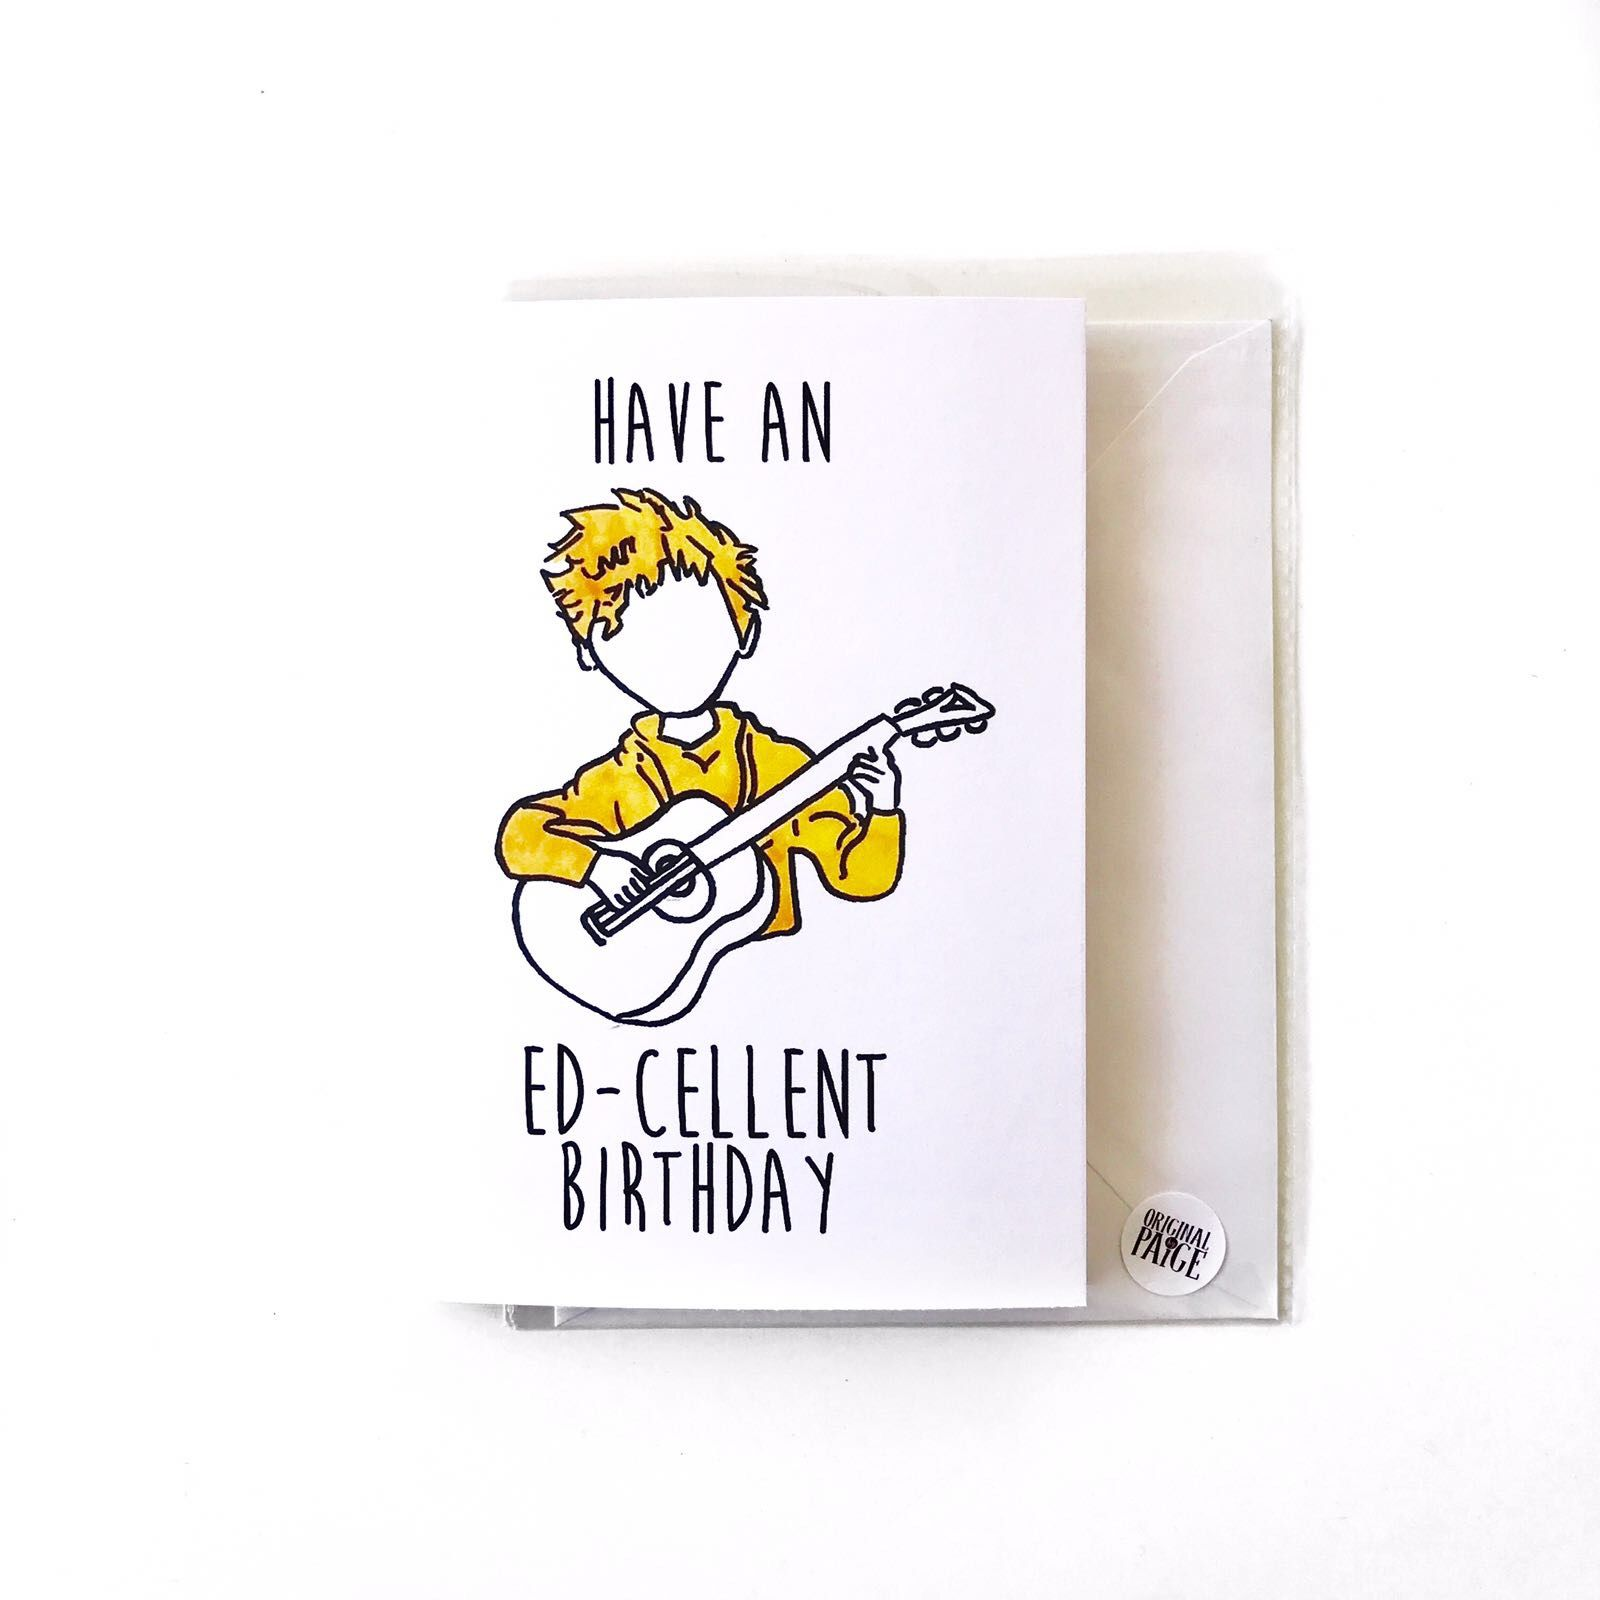 Ed Sheeran birthday card check us out on etsy and depop link